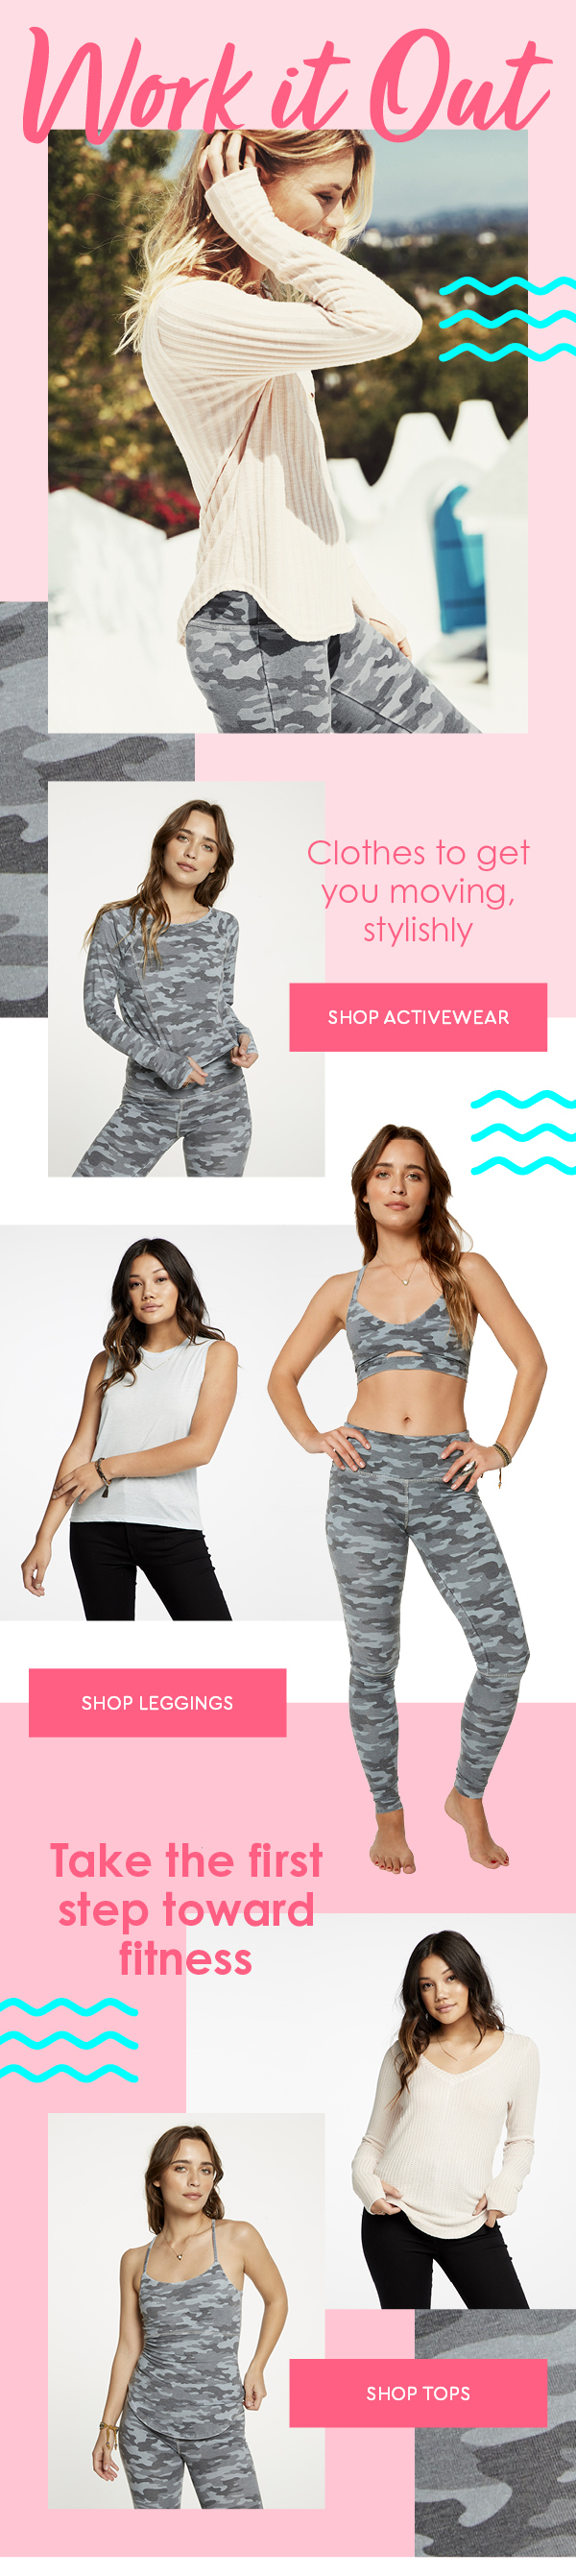 Your favorite new clothes might just be gym clothes. Seriously.